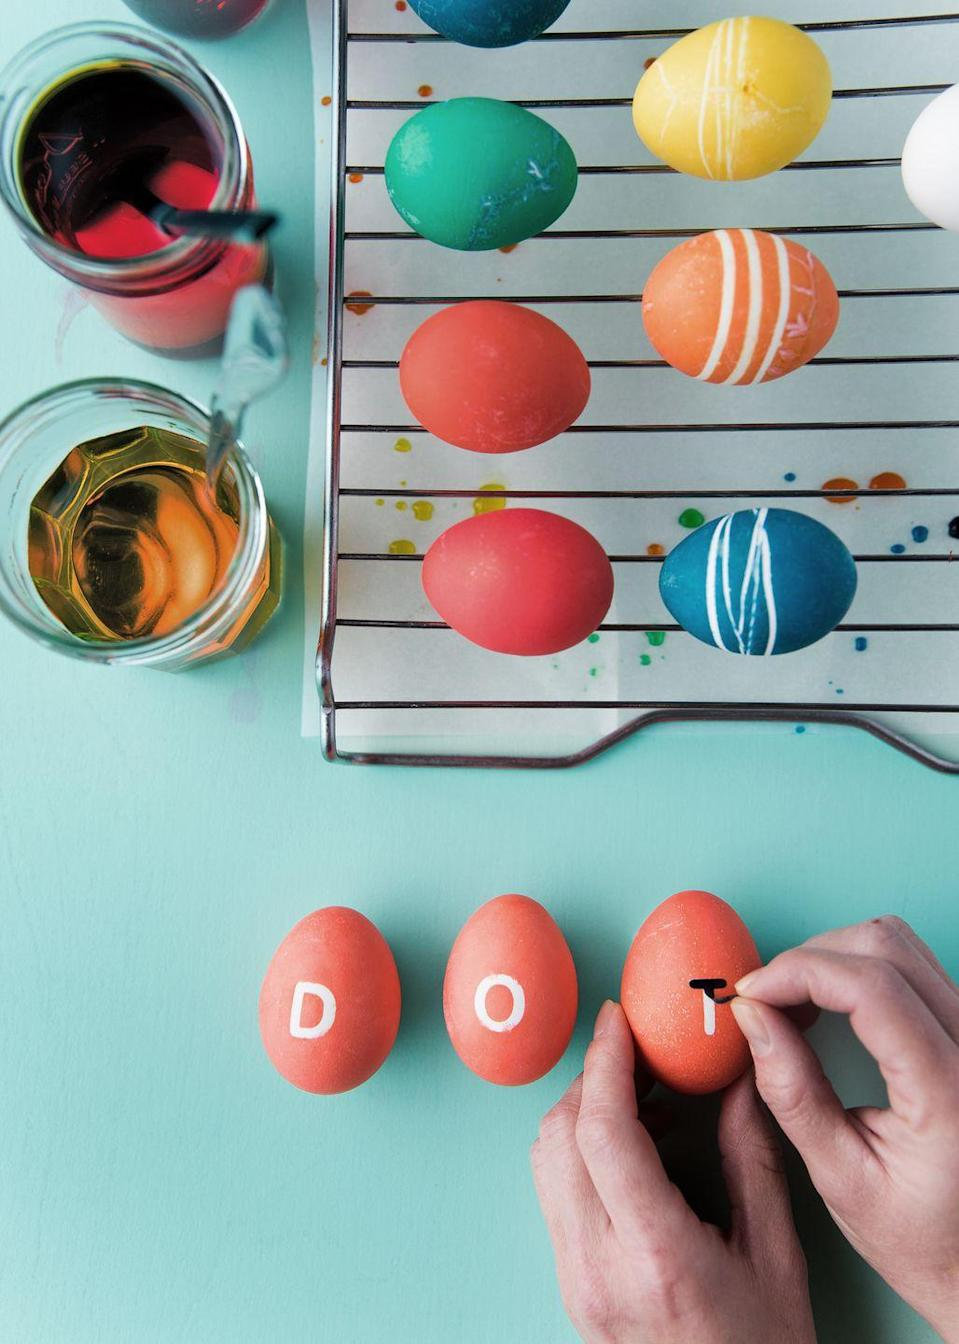 "<p>We love using small letter stickers on the eggs for our kids' <a href=""https://www.countryliving.com/diy-crafts/g3099/easter-basket-ideas/"" rel=""nofollow noopener"" target=""_blank"" data-ylk=""slk:Easter baskets"" class=""link rapid-noclick-resp"">Easter baskets</a>! For an <a href=""https://www.countryliving.com/entertaining/g4083/easter-egg-hunt-ideas/"" rel=""nofollow noopener"" target=""_blank"" data-ylk=""slk:Easter egg hunt"" class=""link rapid-noclick-resp"">Easter egg hunt</a> with a mysterious twist, try spelling out a secret message with one letter on each egg. </p><p><a class=""link rapid-noclick-resp"" href=""https://www.amazon.com/Chartpak-Self-Adhesive-Capital-Letters-Numbers/dp/B009Y6UURY/?tag=syn-yahoo-20&ascsubtag=%5Bartid%7C10050.g.26810304%5Bsrc%7Cyahoo-us"" rel=""nofollow noopener"" target=""_blank"" data-ylk=""slk:SHOP LETTER STICKERS"">SHOP LETTER STICKERS</a></p>"